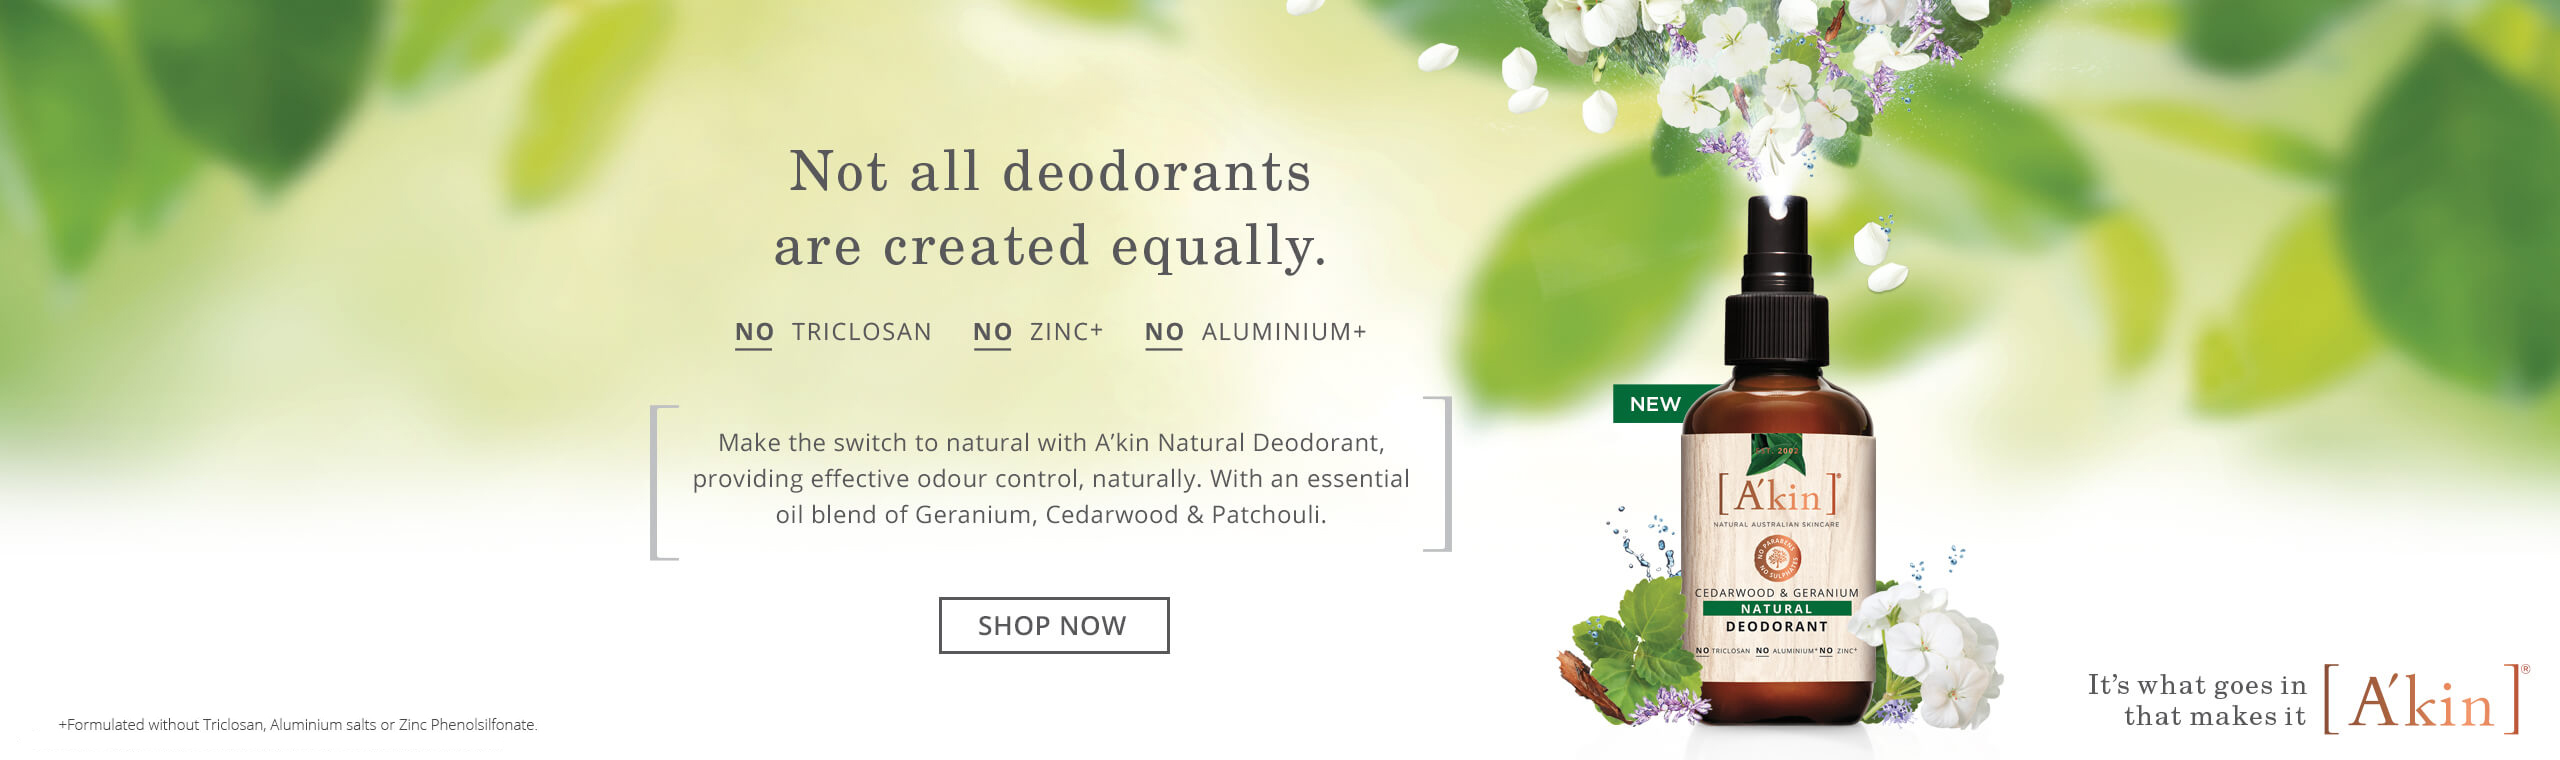 Not all deodorants are created equally. No Triclosan. No Zinc+ No Aluminium+. Make the switch to natural with A'kin Natural Deodorant, providing effective odour control, naturally. With an essential oil blend of Geranium, Cedarwood & Patchouli.